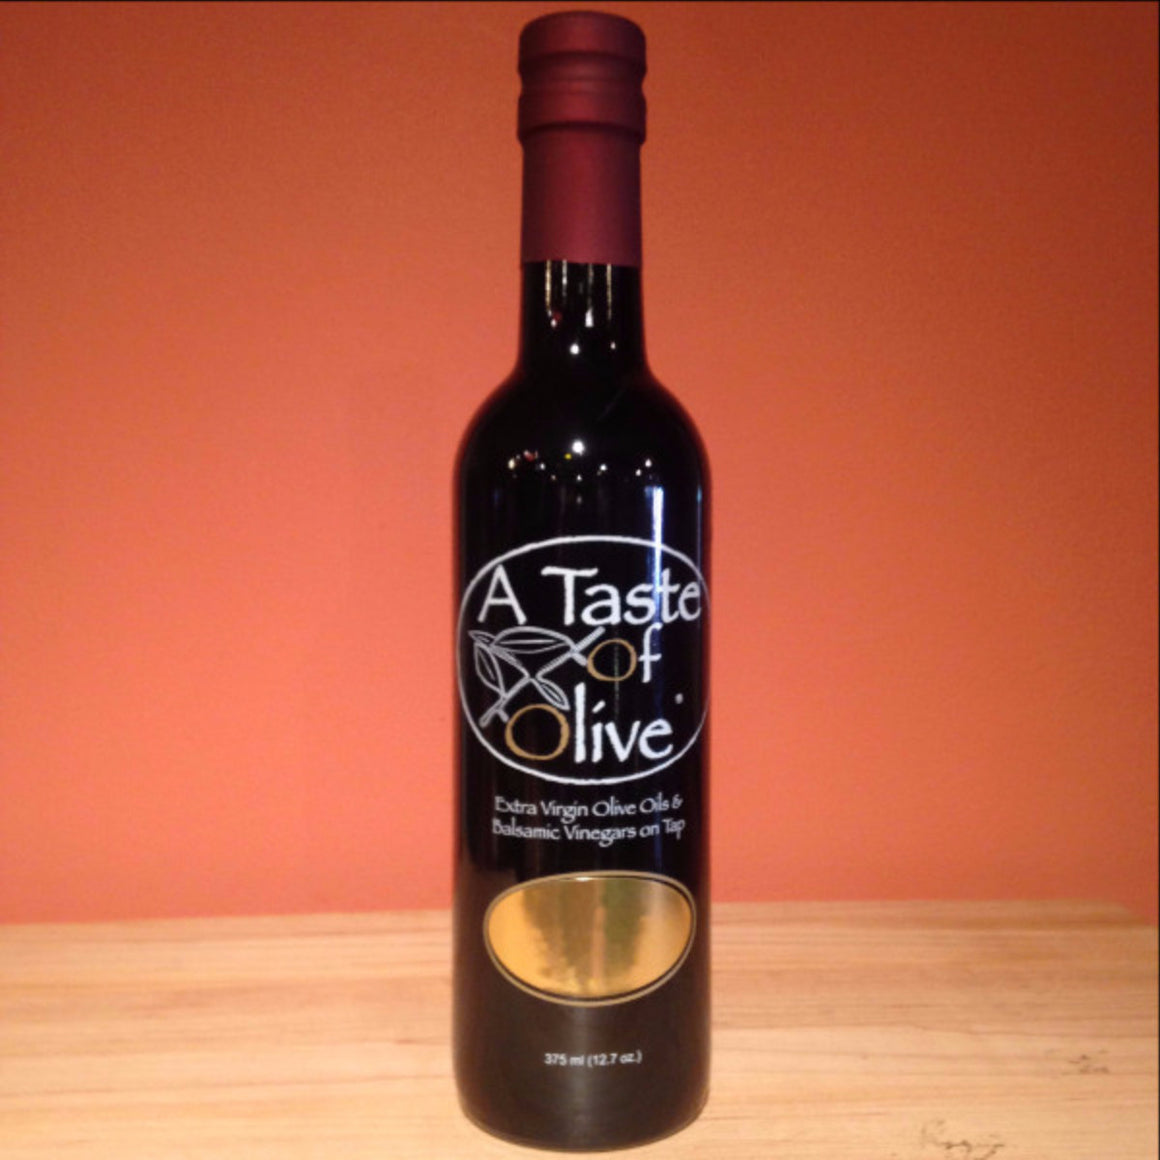 L'Acetaia Spesso Traditional Balsamic Vinegar - A Taste of Olive - 1